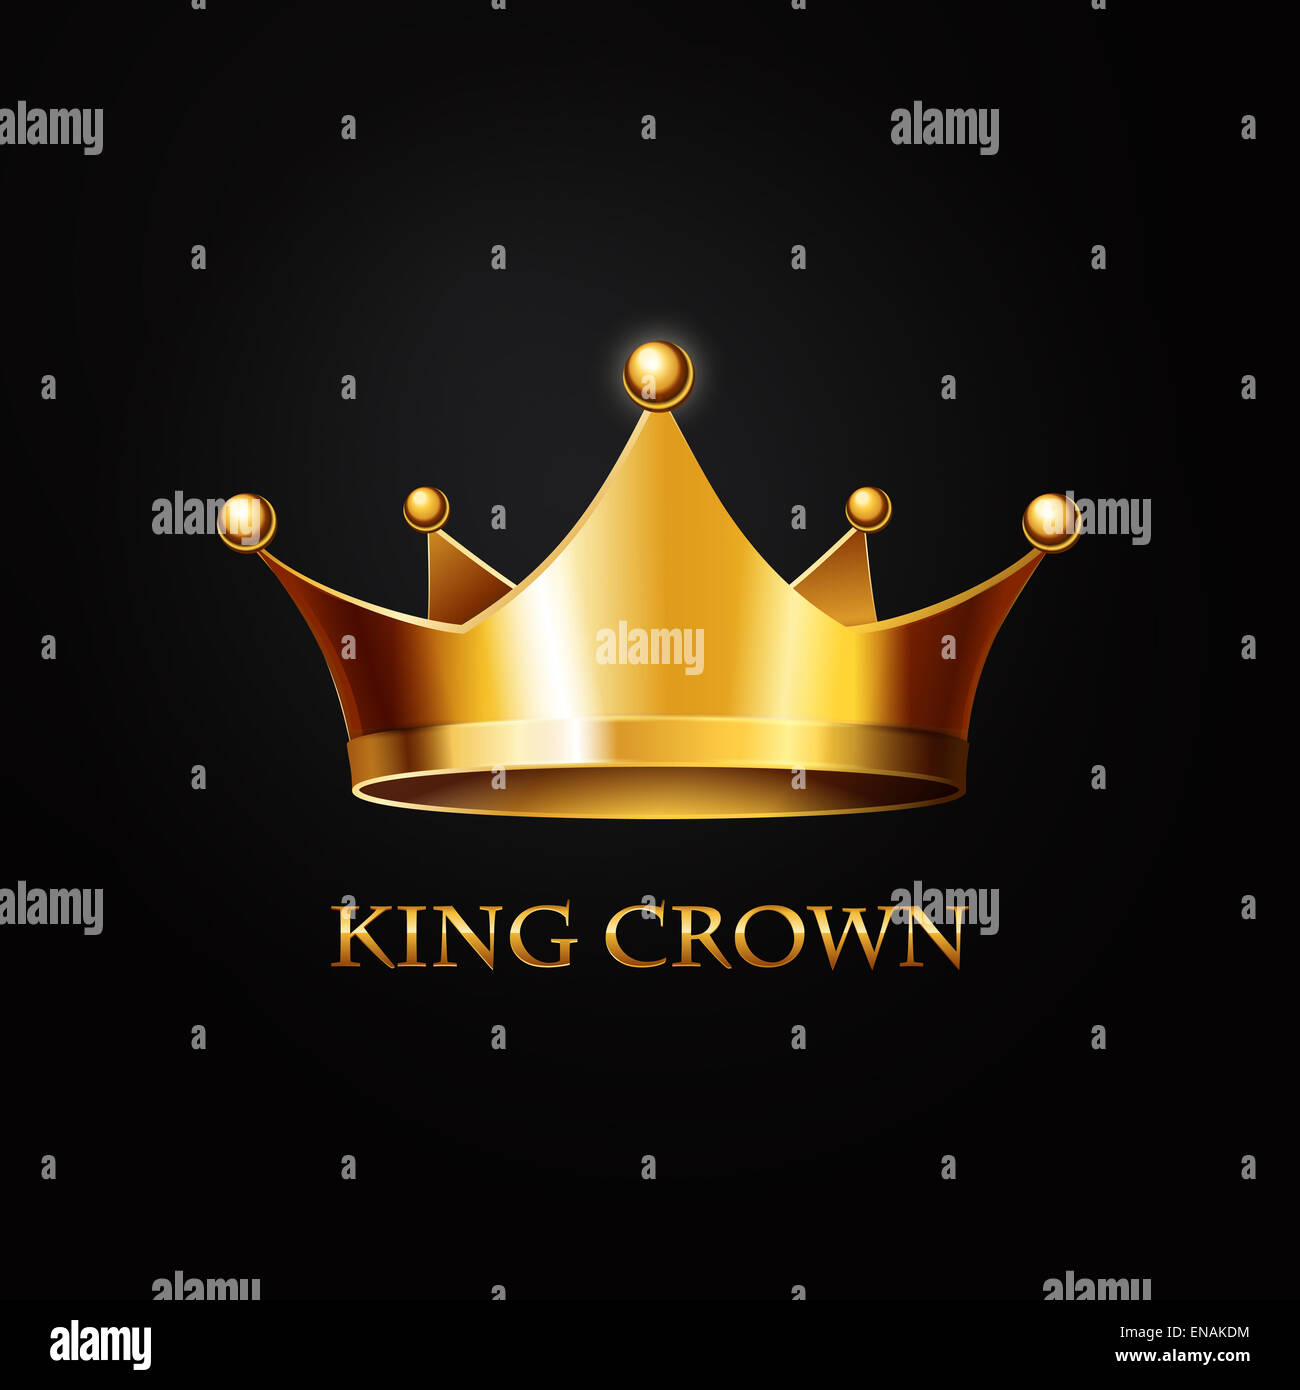 black king crown wallpaper - photo #45